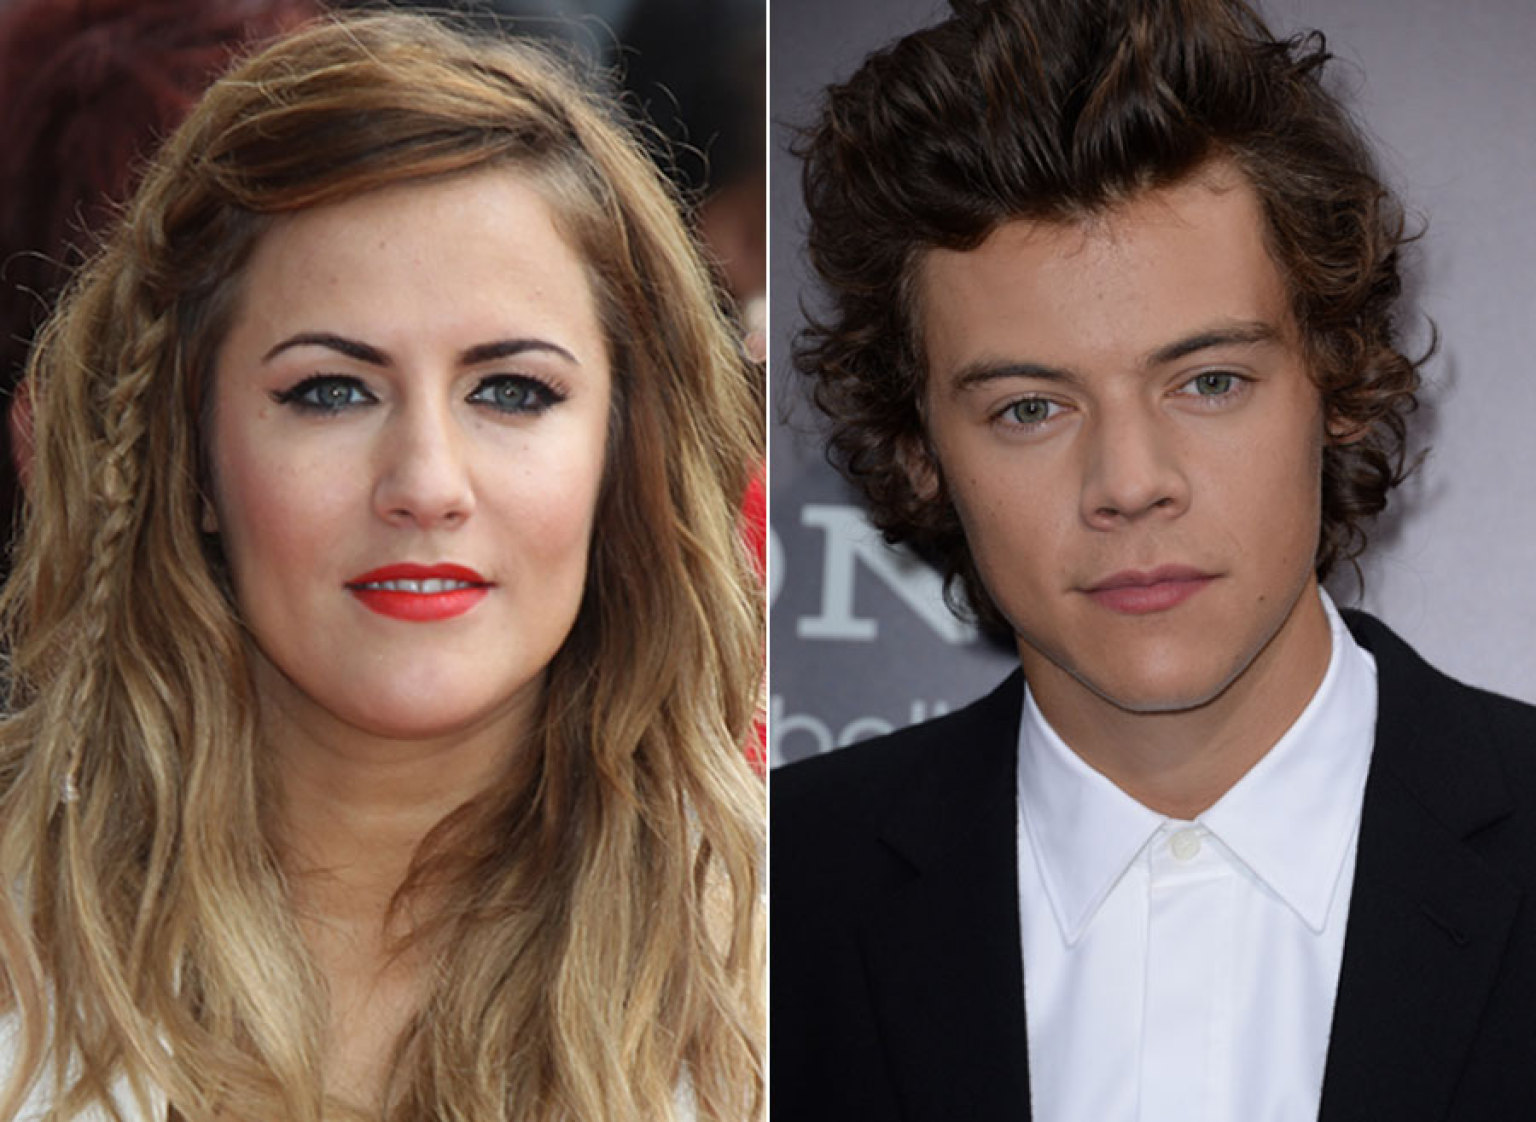 Harry Styles' Dad Des Hits Out At Caroline Flack On